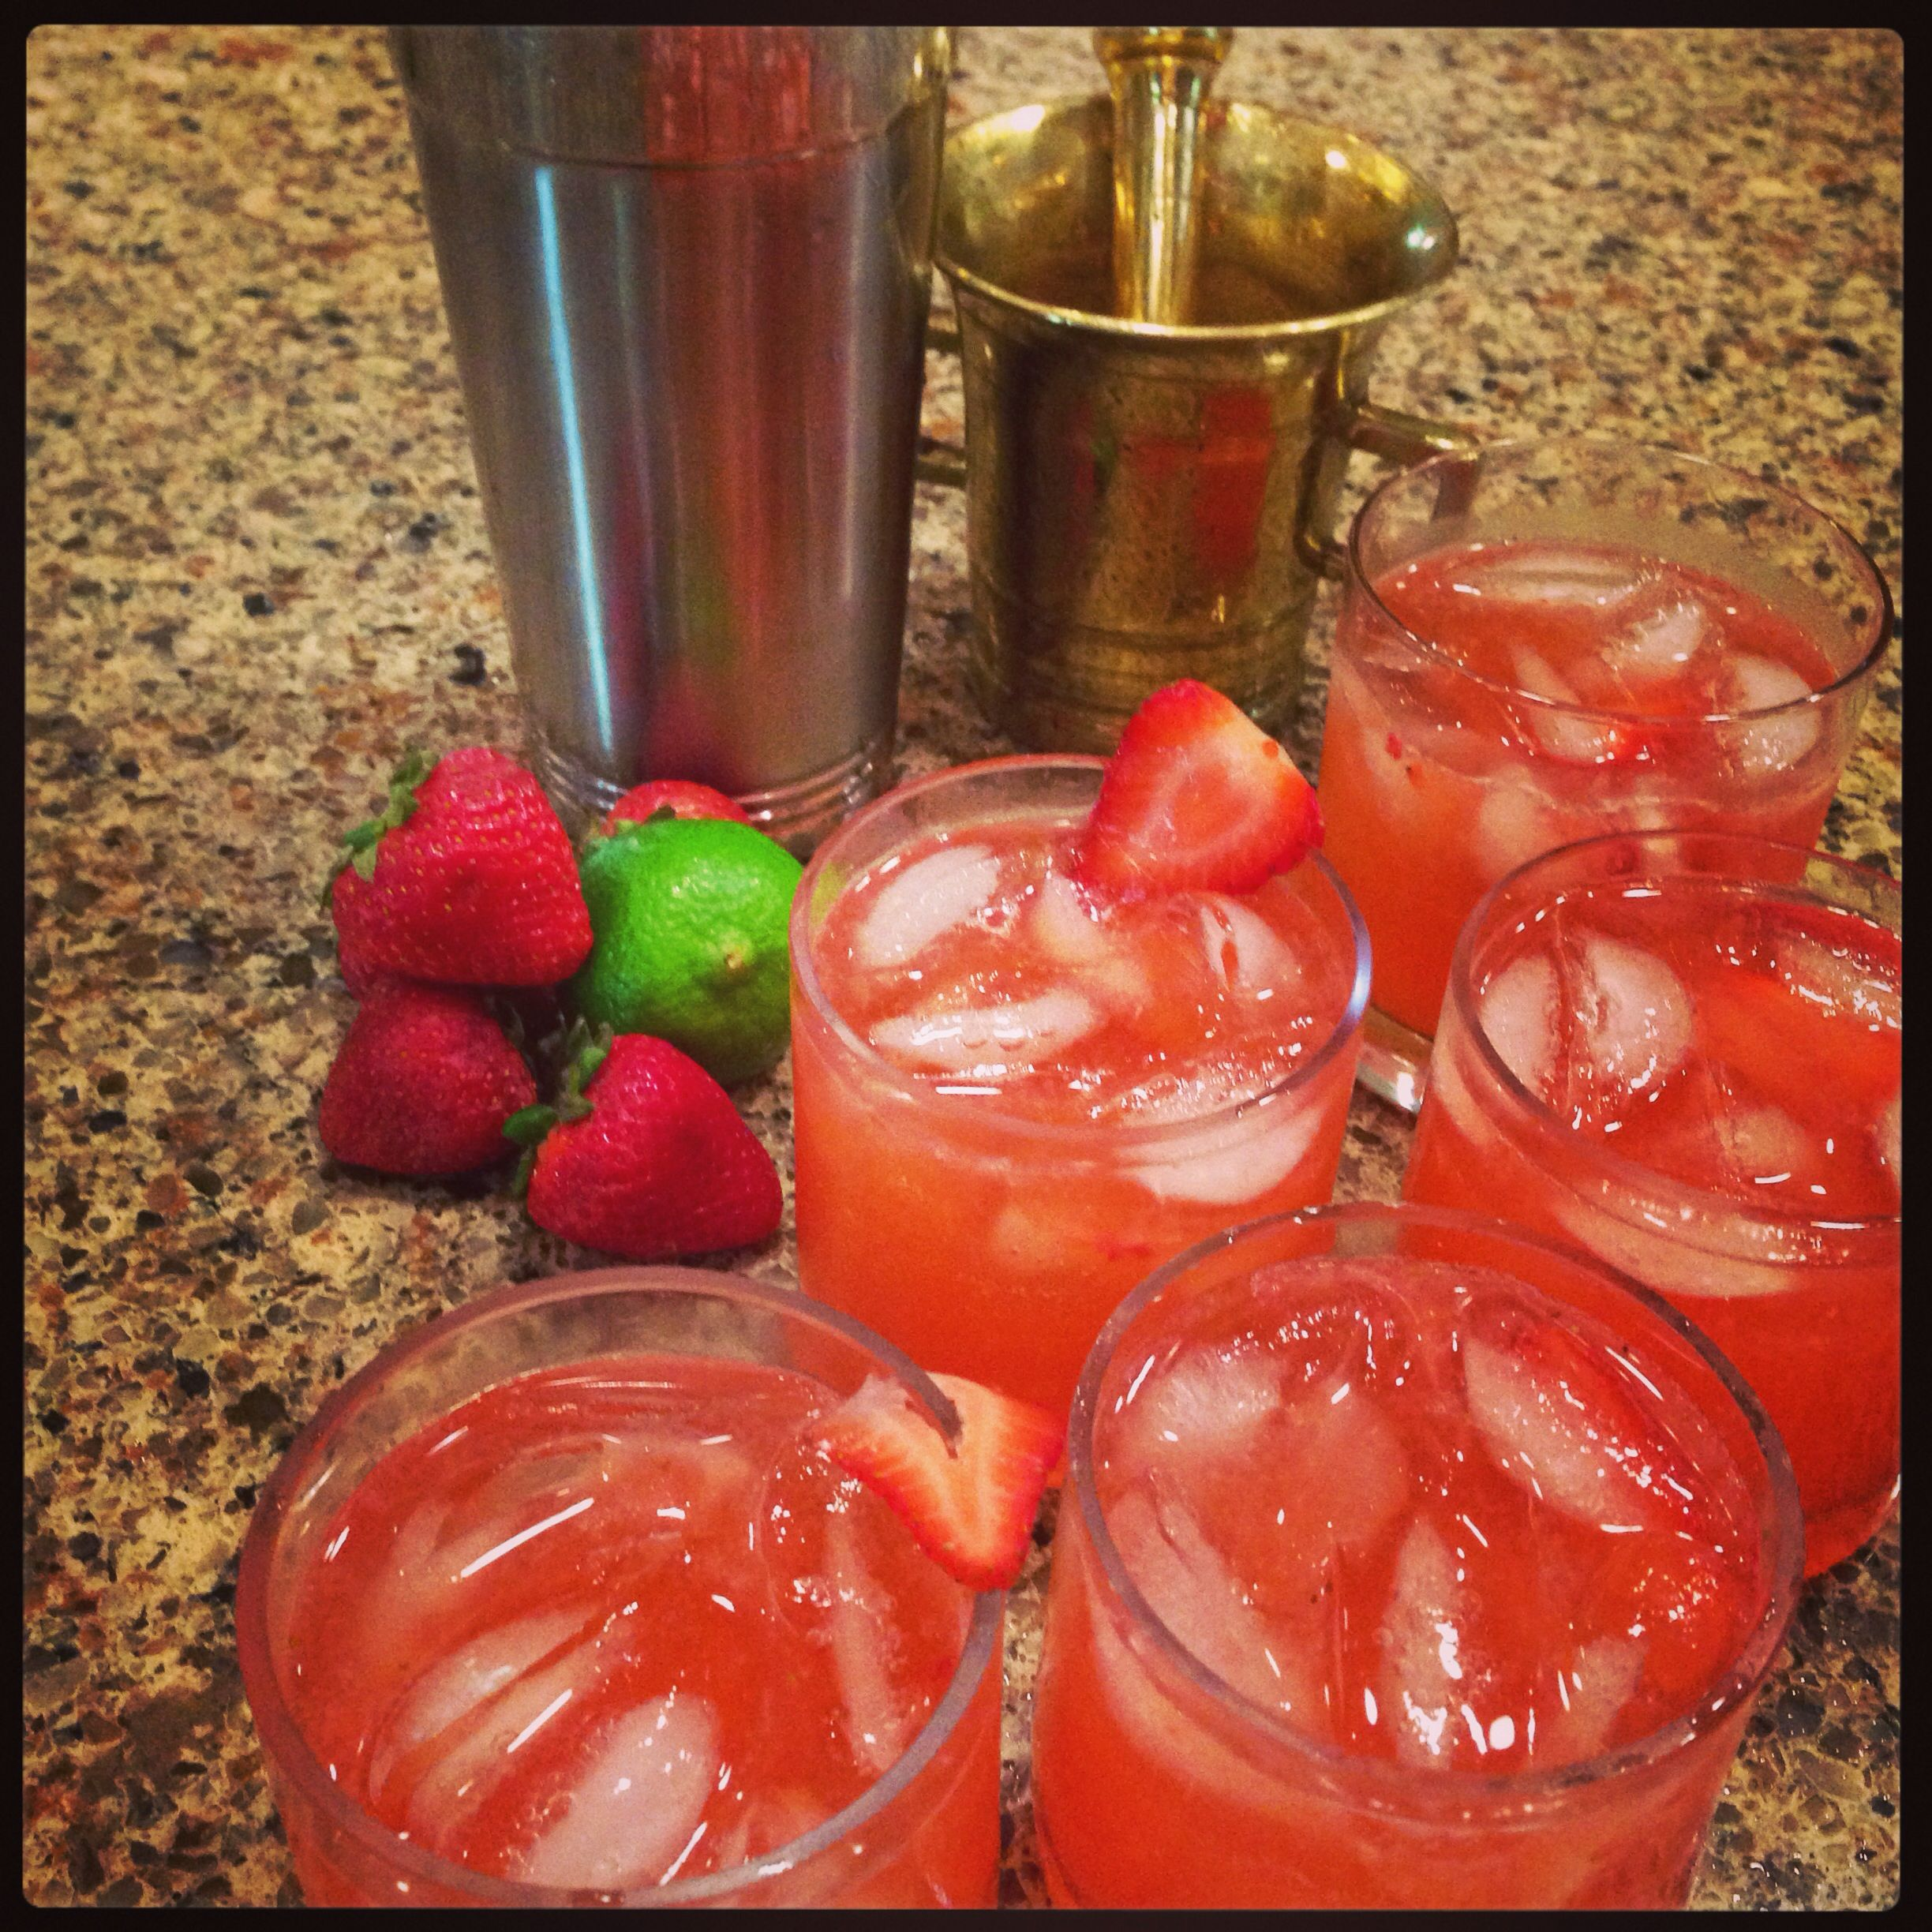 No more slurpee-like drinks. These strawberry daiquiris with fresh squeezed lime and muddled strawberries are the real deal. Cheers!